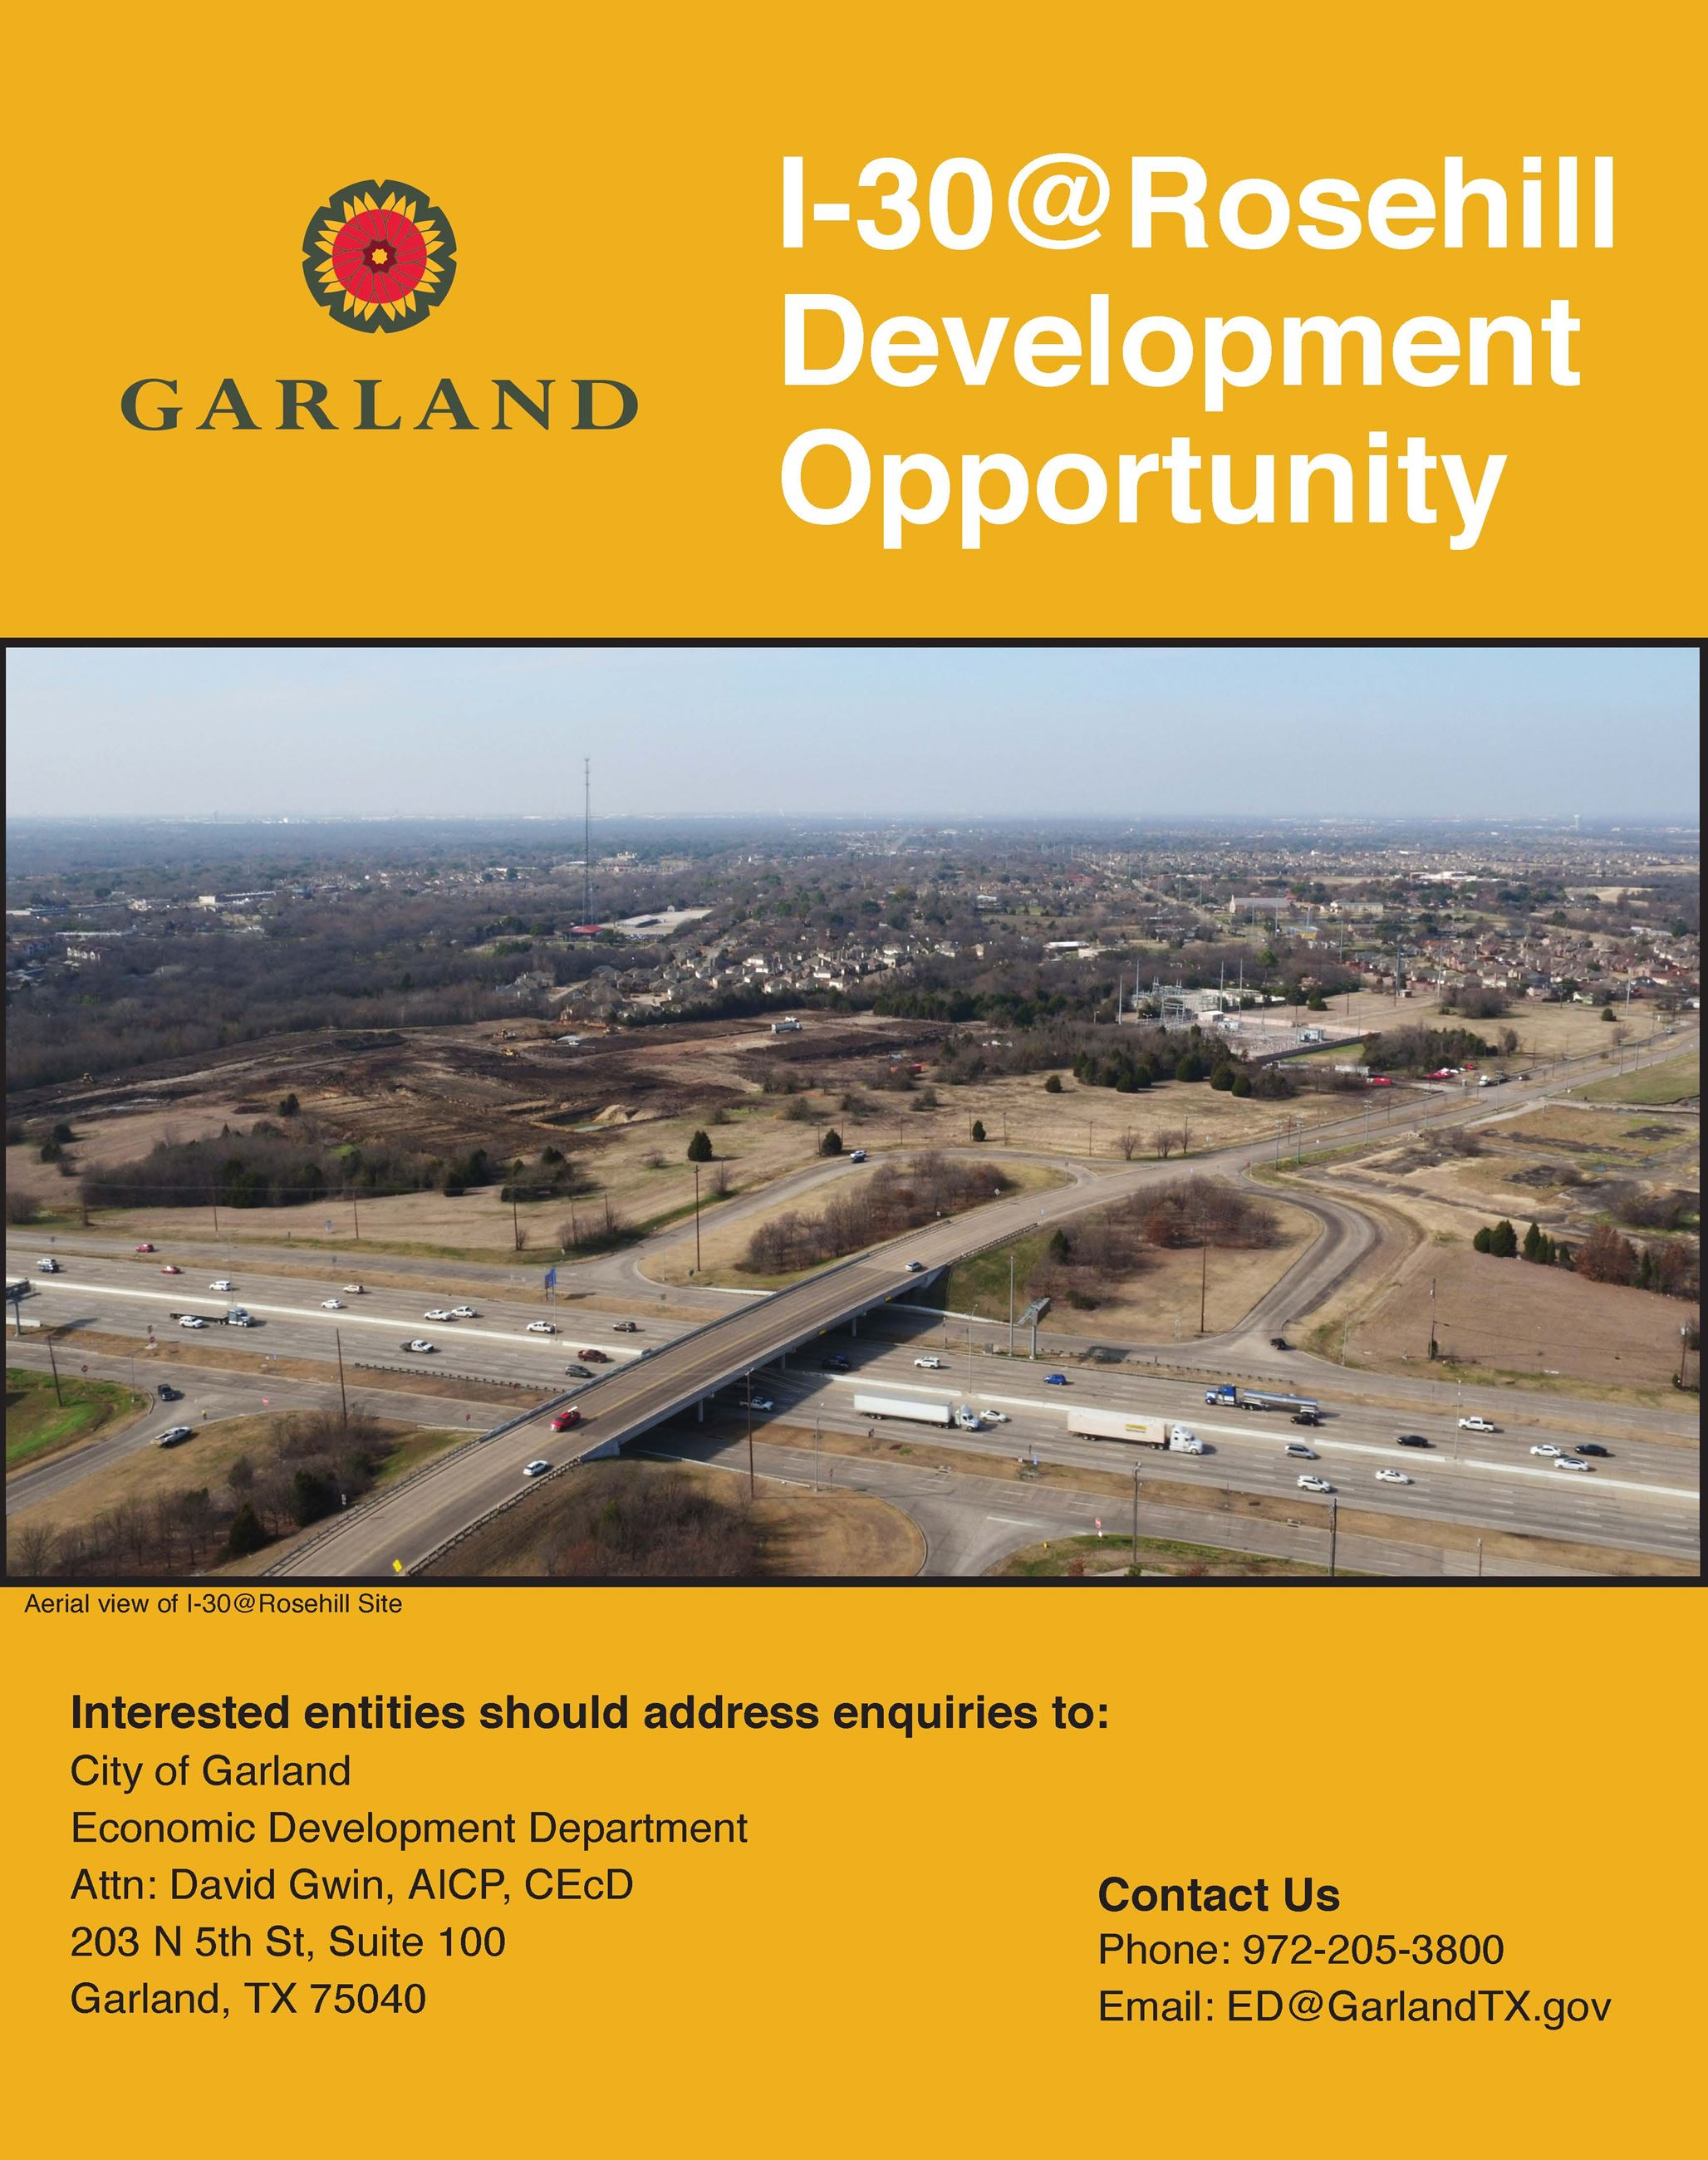 I-30 at Rosehill Development Opportunity